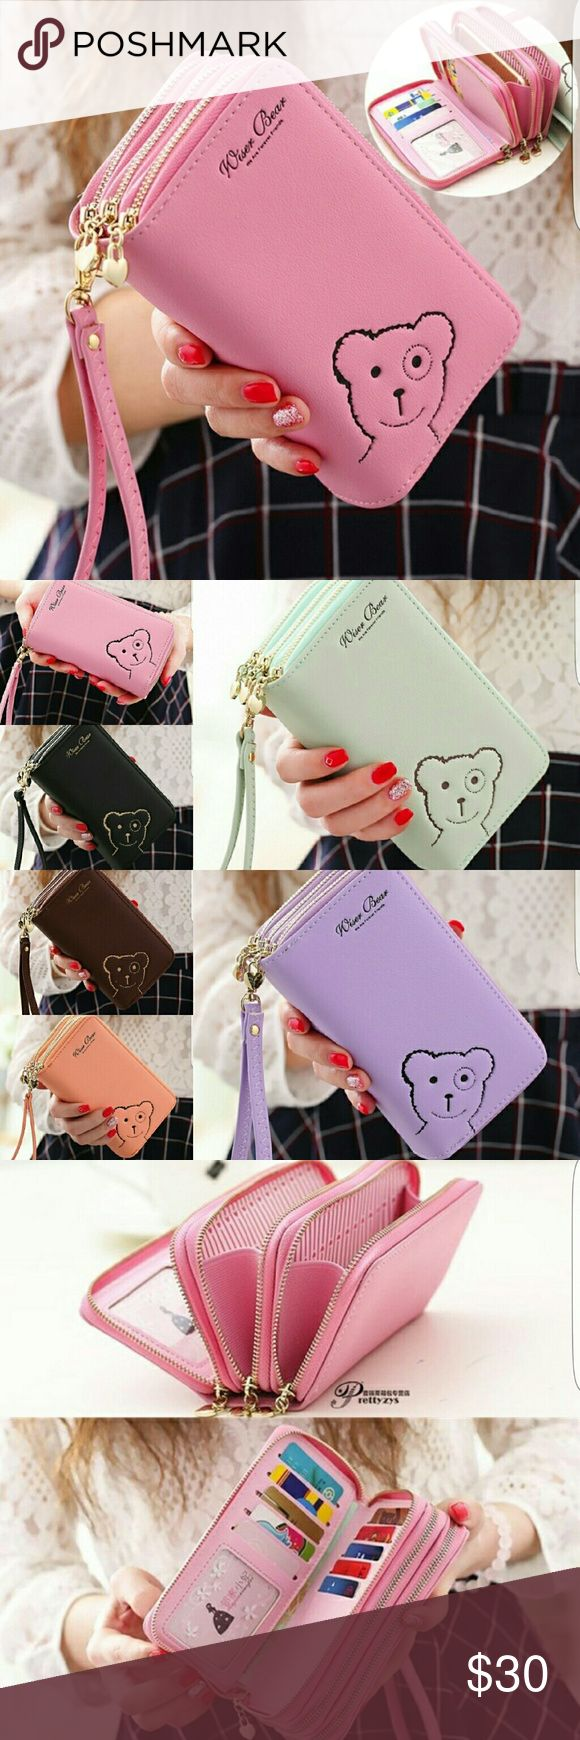 """""""Wiser Bear """" Phone Wrist Wallet 2017 Fashion Women Wrist Wallet ??Cute Bear Lady Handbag Clutch Zipper ??Multifunction Coin Purse ??Universal Phone Case Cover For iPhone 7 6S Samsung Galaxy S7 S6 Edge   ??Description Ingredient: High Quality PU Leather Size: 15 cm x 9.6 cm x 4.5 cm  (L x W x H) Note: Cellphones below 5.5 Inch  Structure: 3 Zipper Pockets 9 Credit Card Slots 1 Photo Frame Package Include: 1 x wallet    1 x Strap - Bags Wallets"""